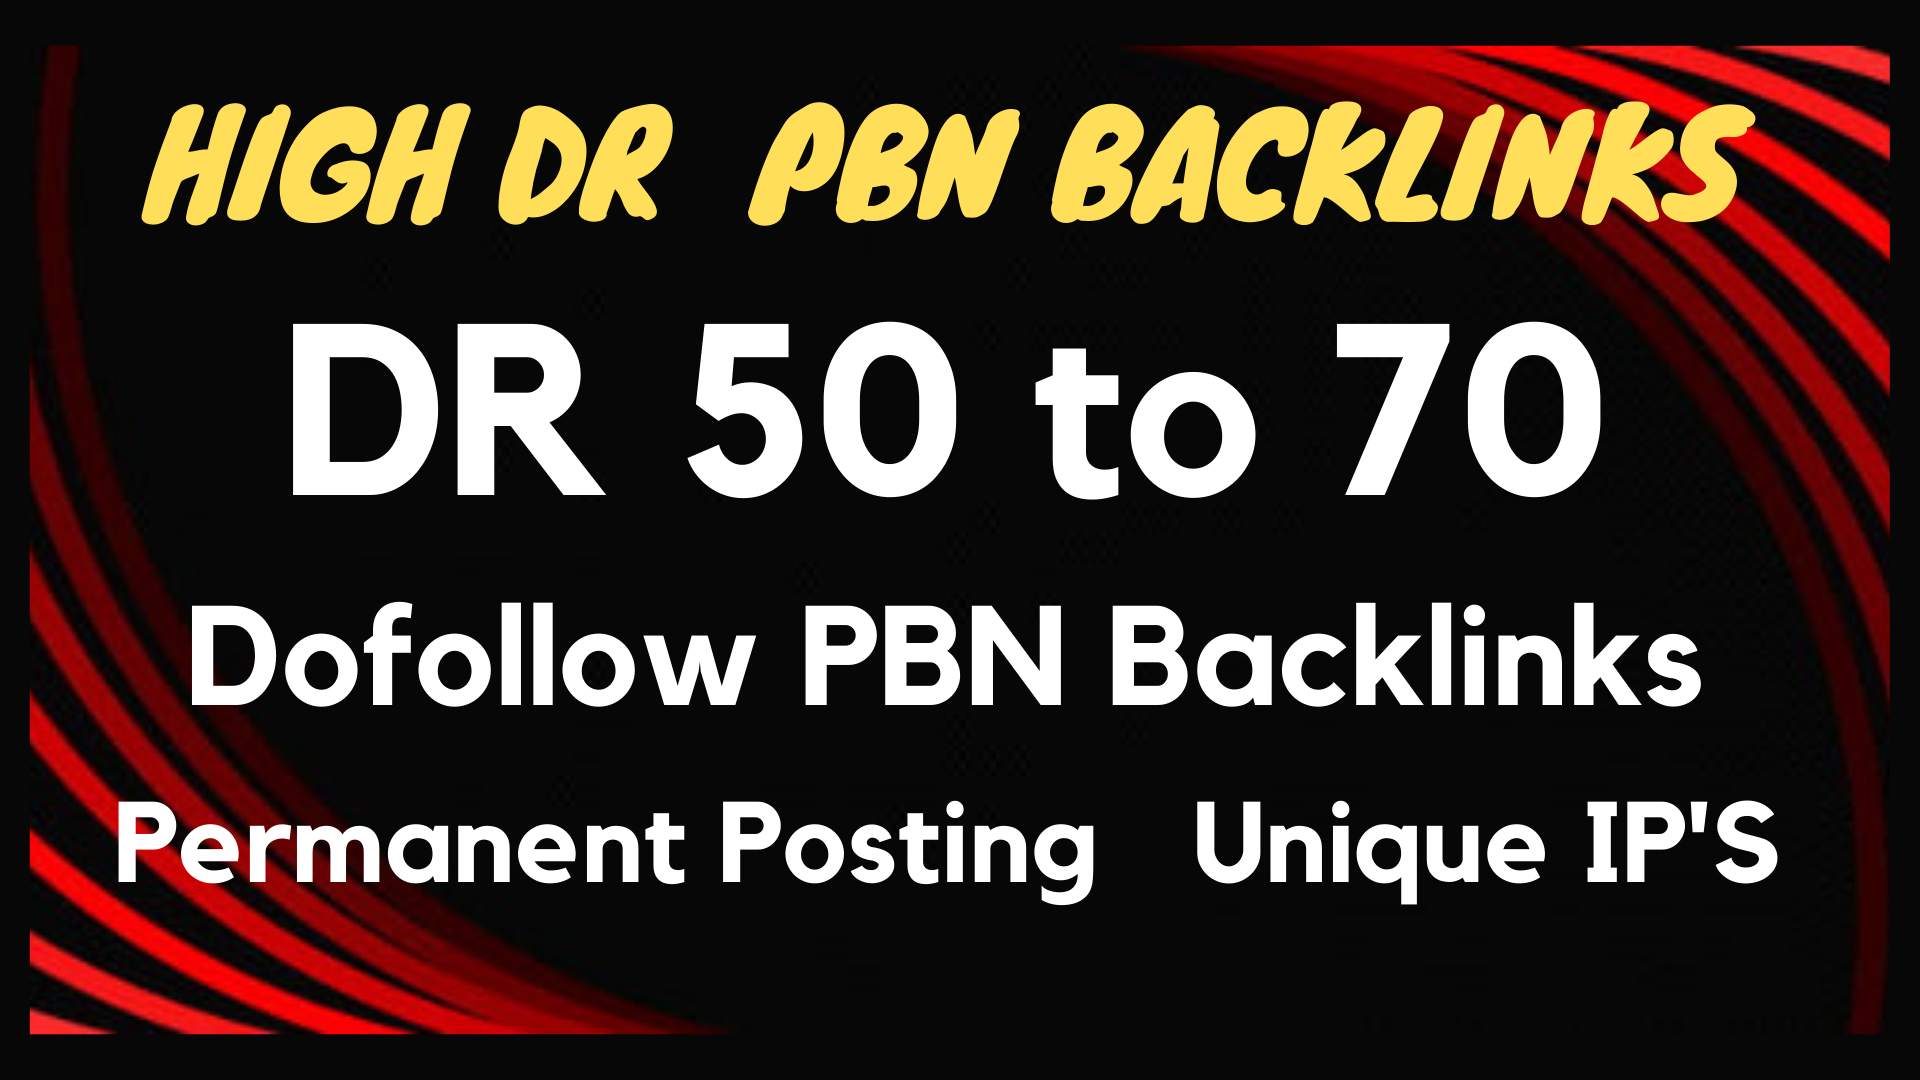 I will make 70 dofollow seo pbn high DR 50 to 70 backlinks for best ranking